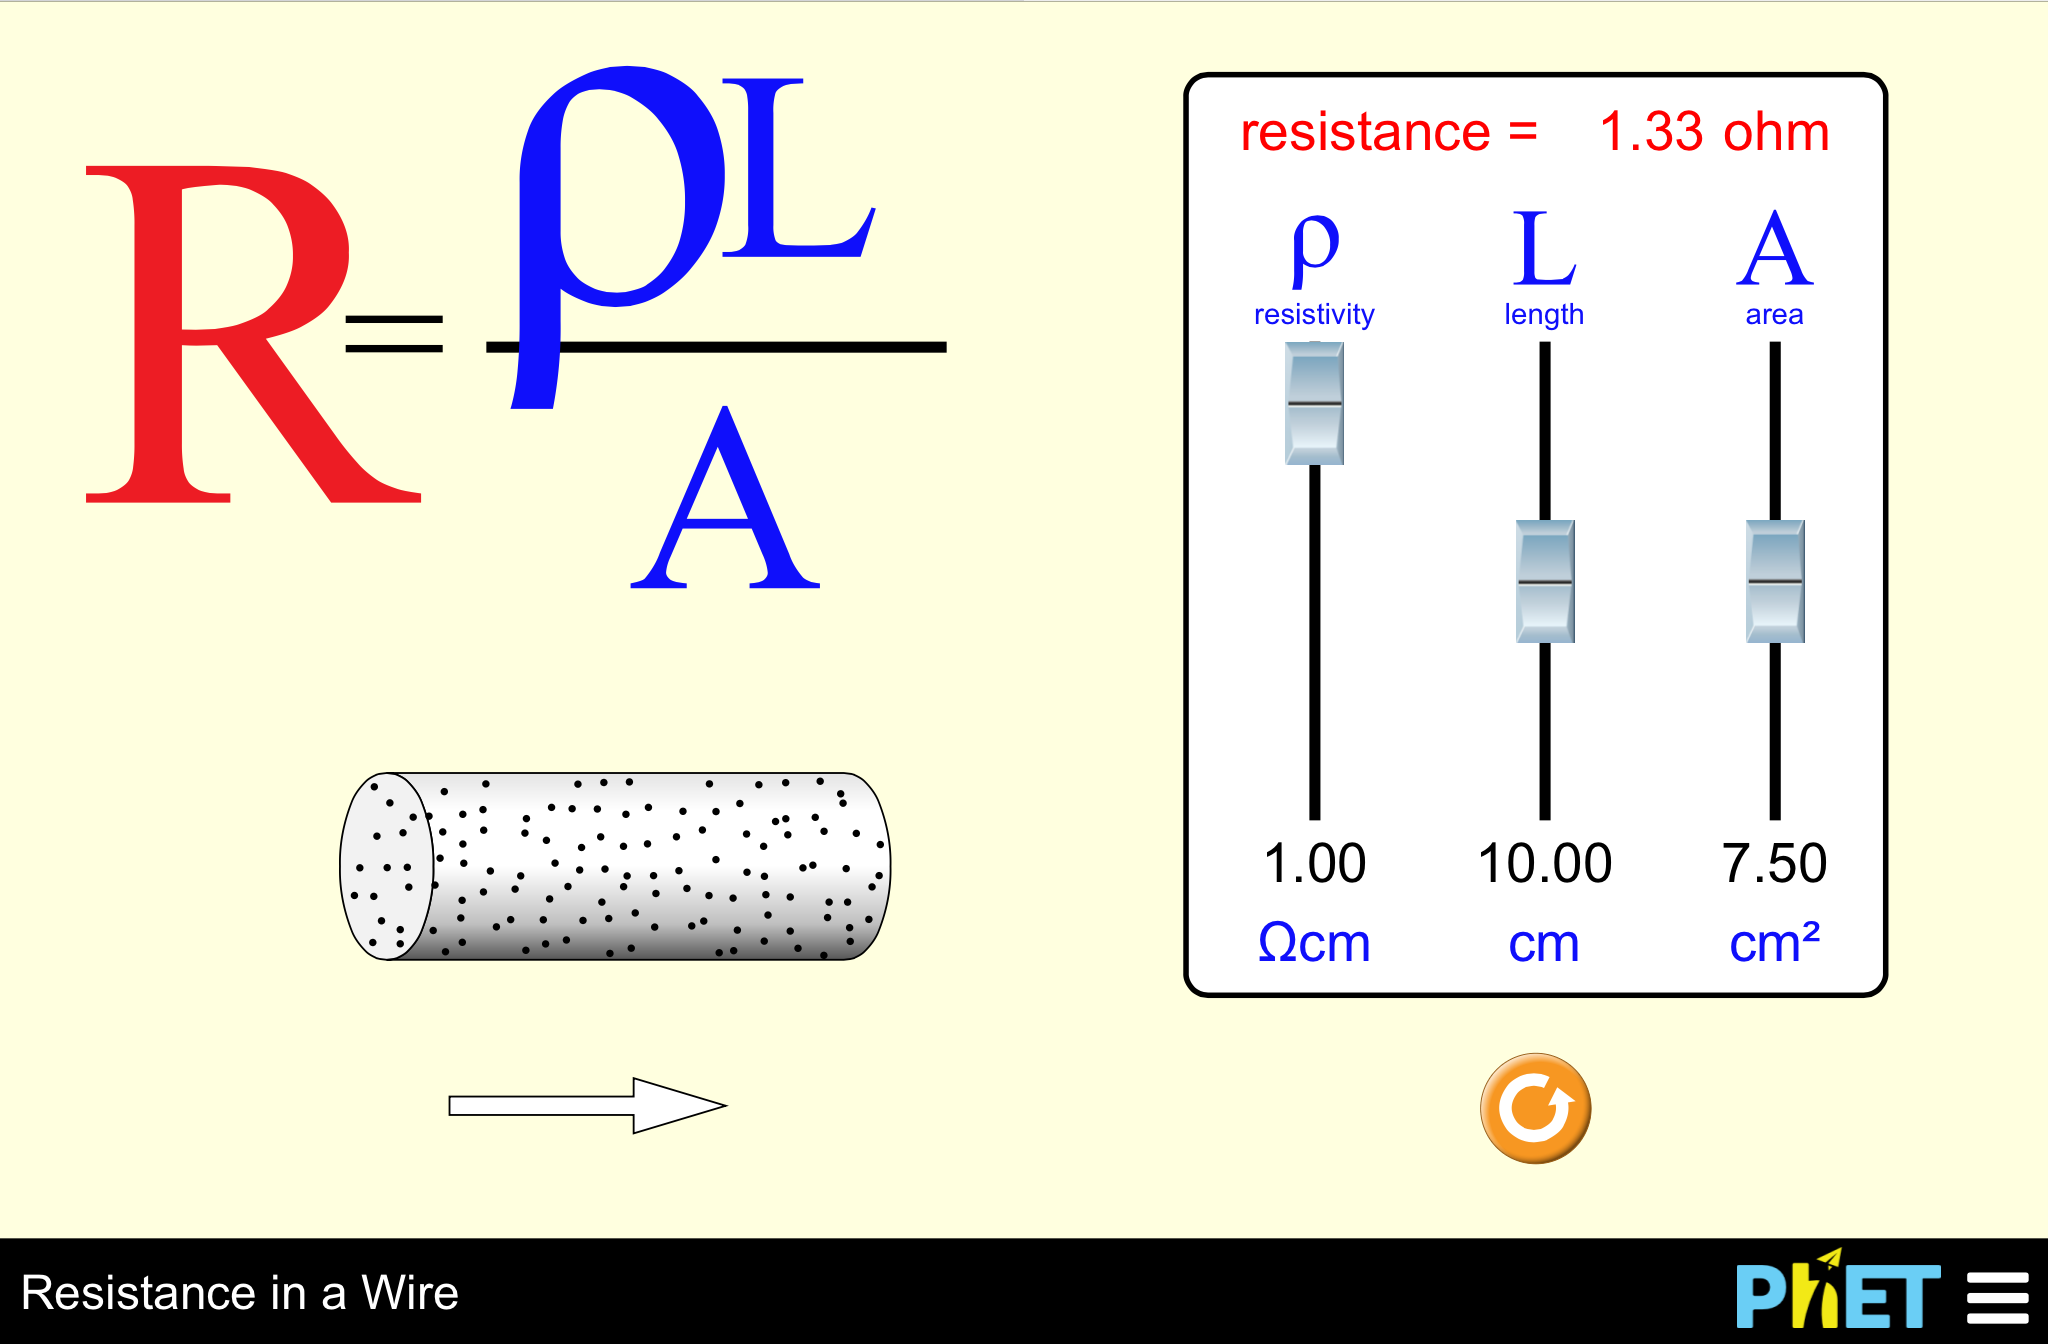 gcse physics coursework resistance wire method An investigation into the resistance of a wire - gcse physics 30 dec 2016 the resistance of a wire free gcse physics coursework essay a wire's resistance.